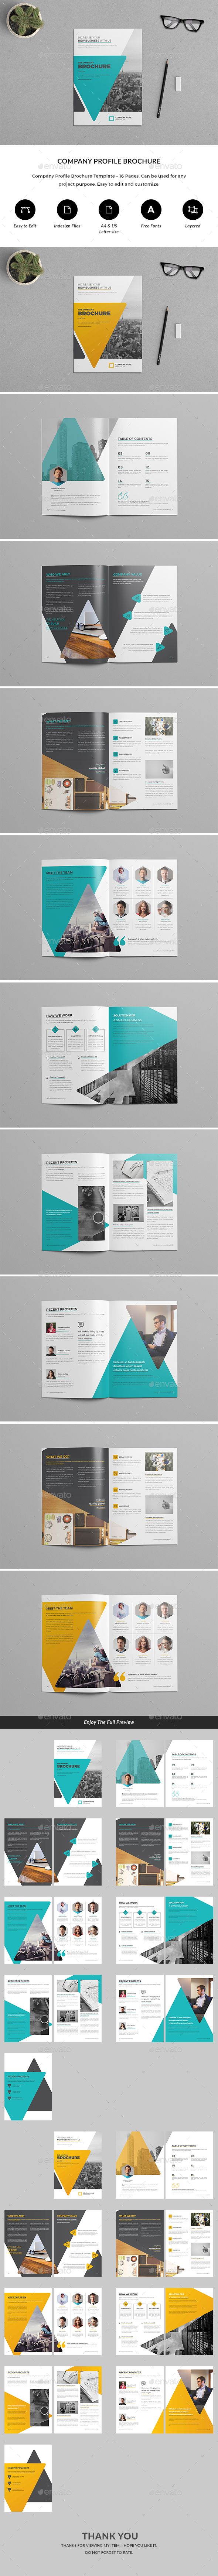 Business Infographic Company Profile Brochure Template Indesign